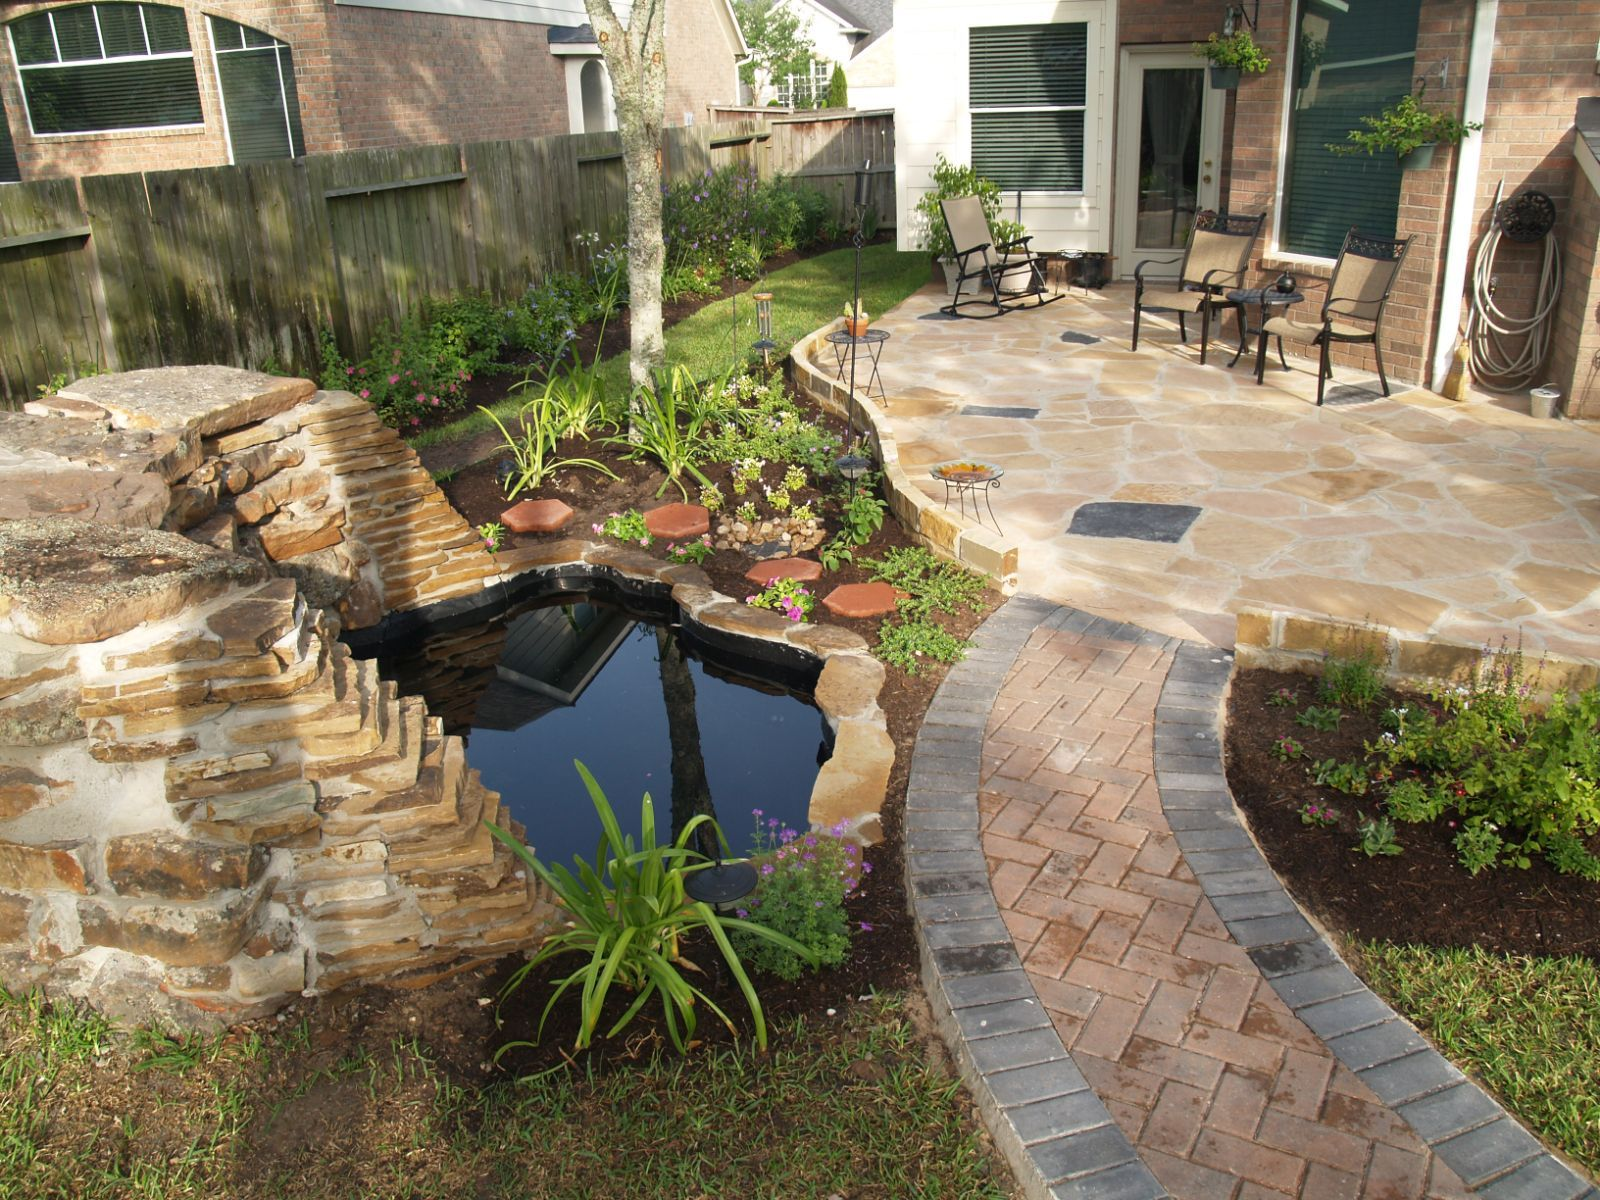 inexpensive backyard ideas of the best backyard landscaping ideas on a budget - Backyard Landscaping Design Ideas